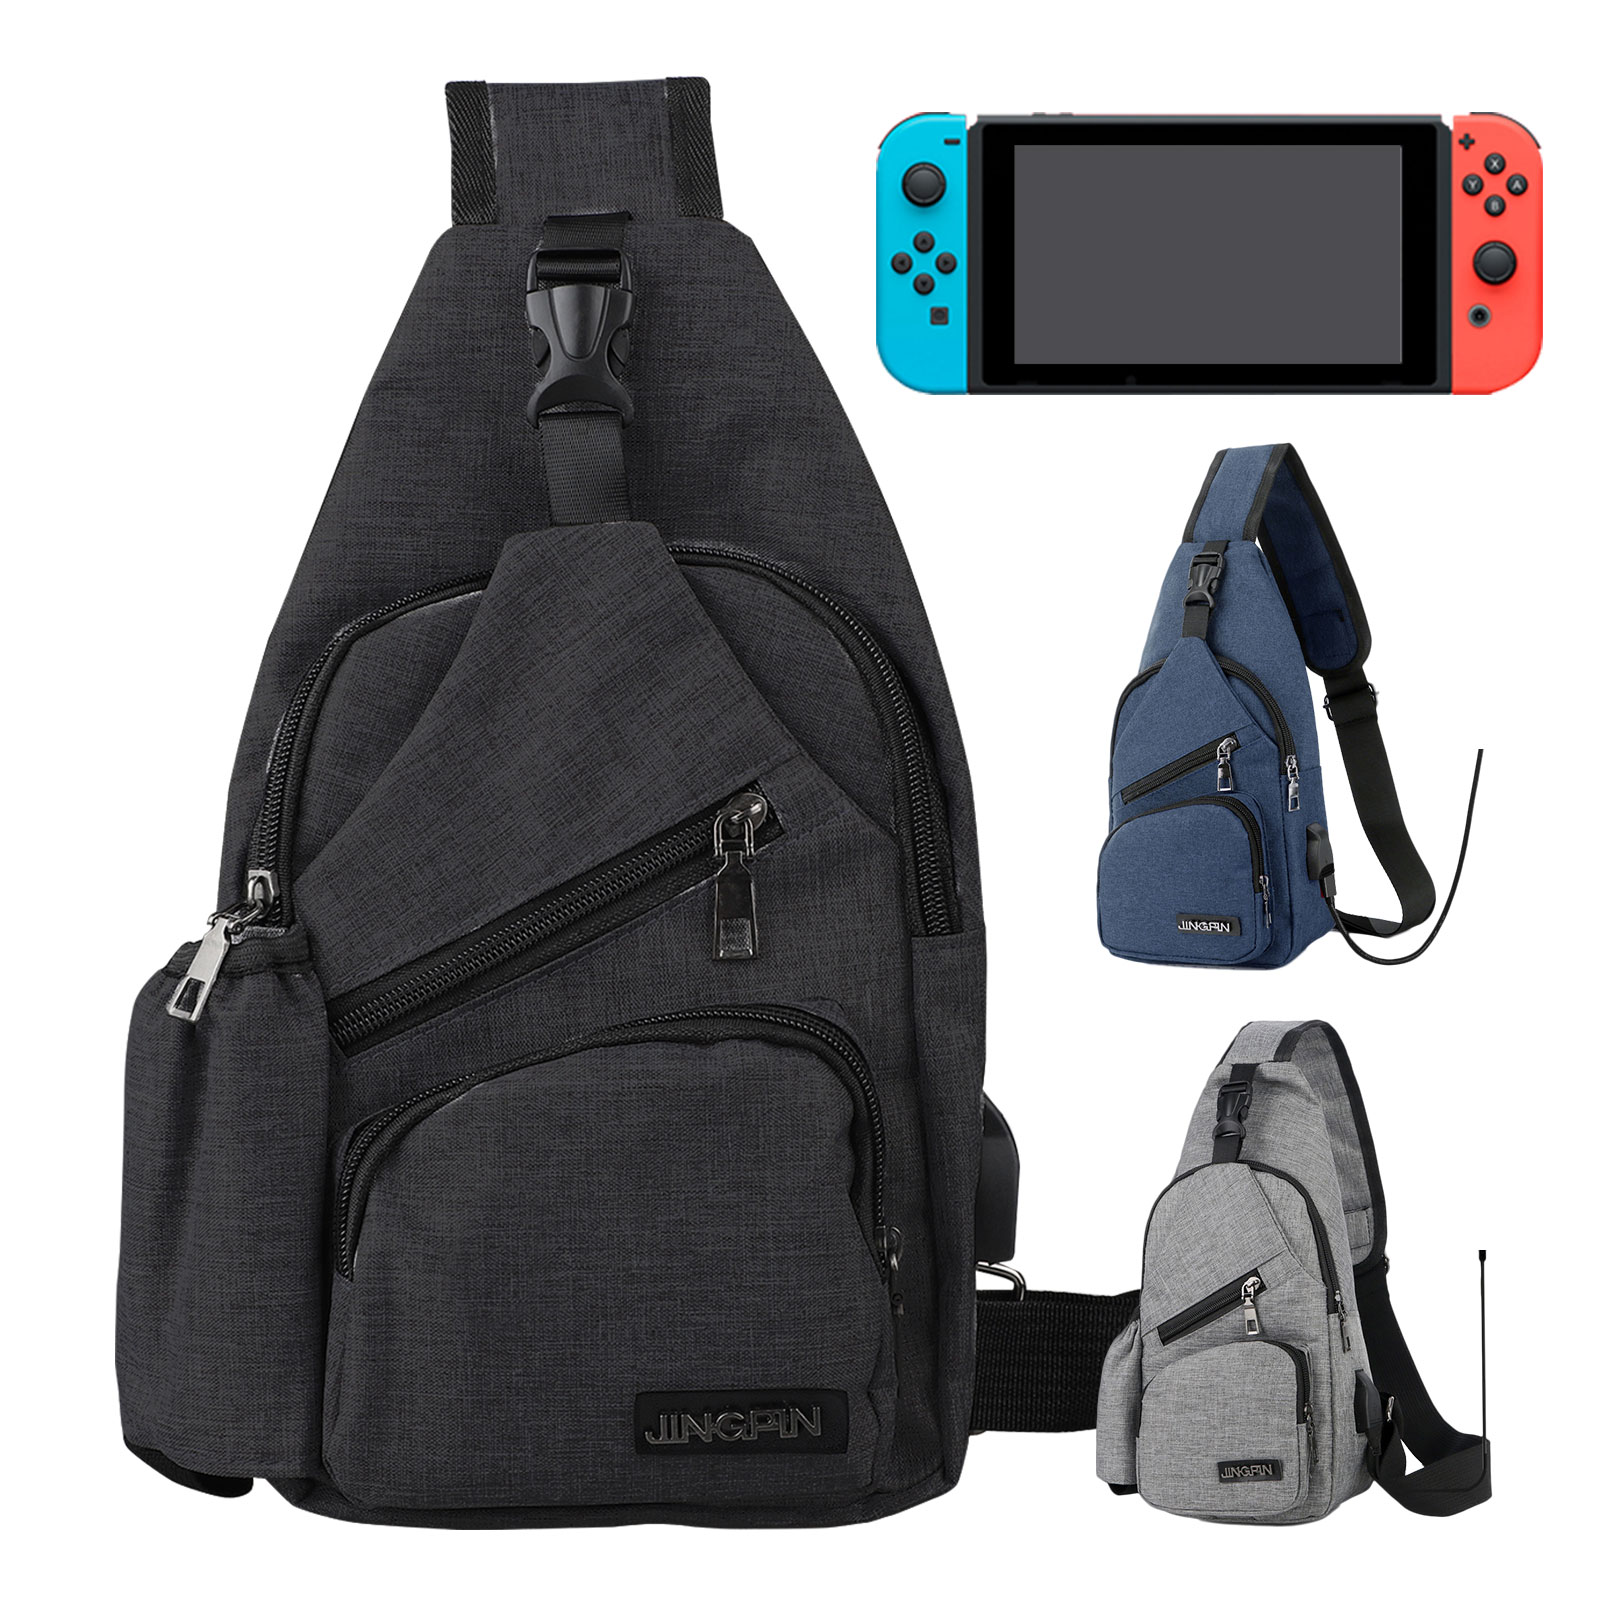 Backpack-Crossbody-Travel-Bag-For-Nintendo-Switch-Console-Joy-Cons-Accessories